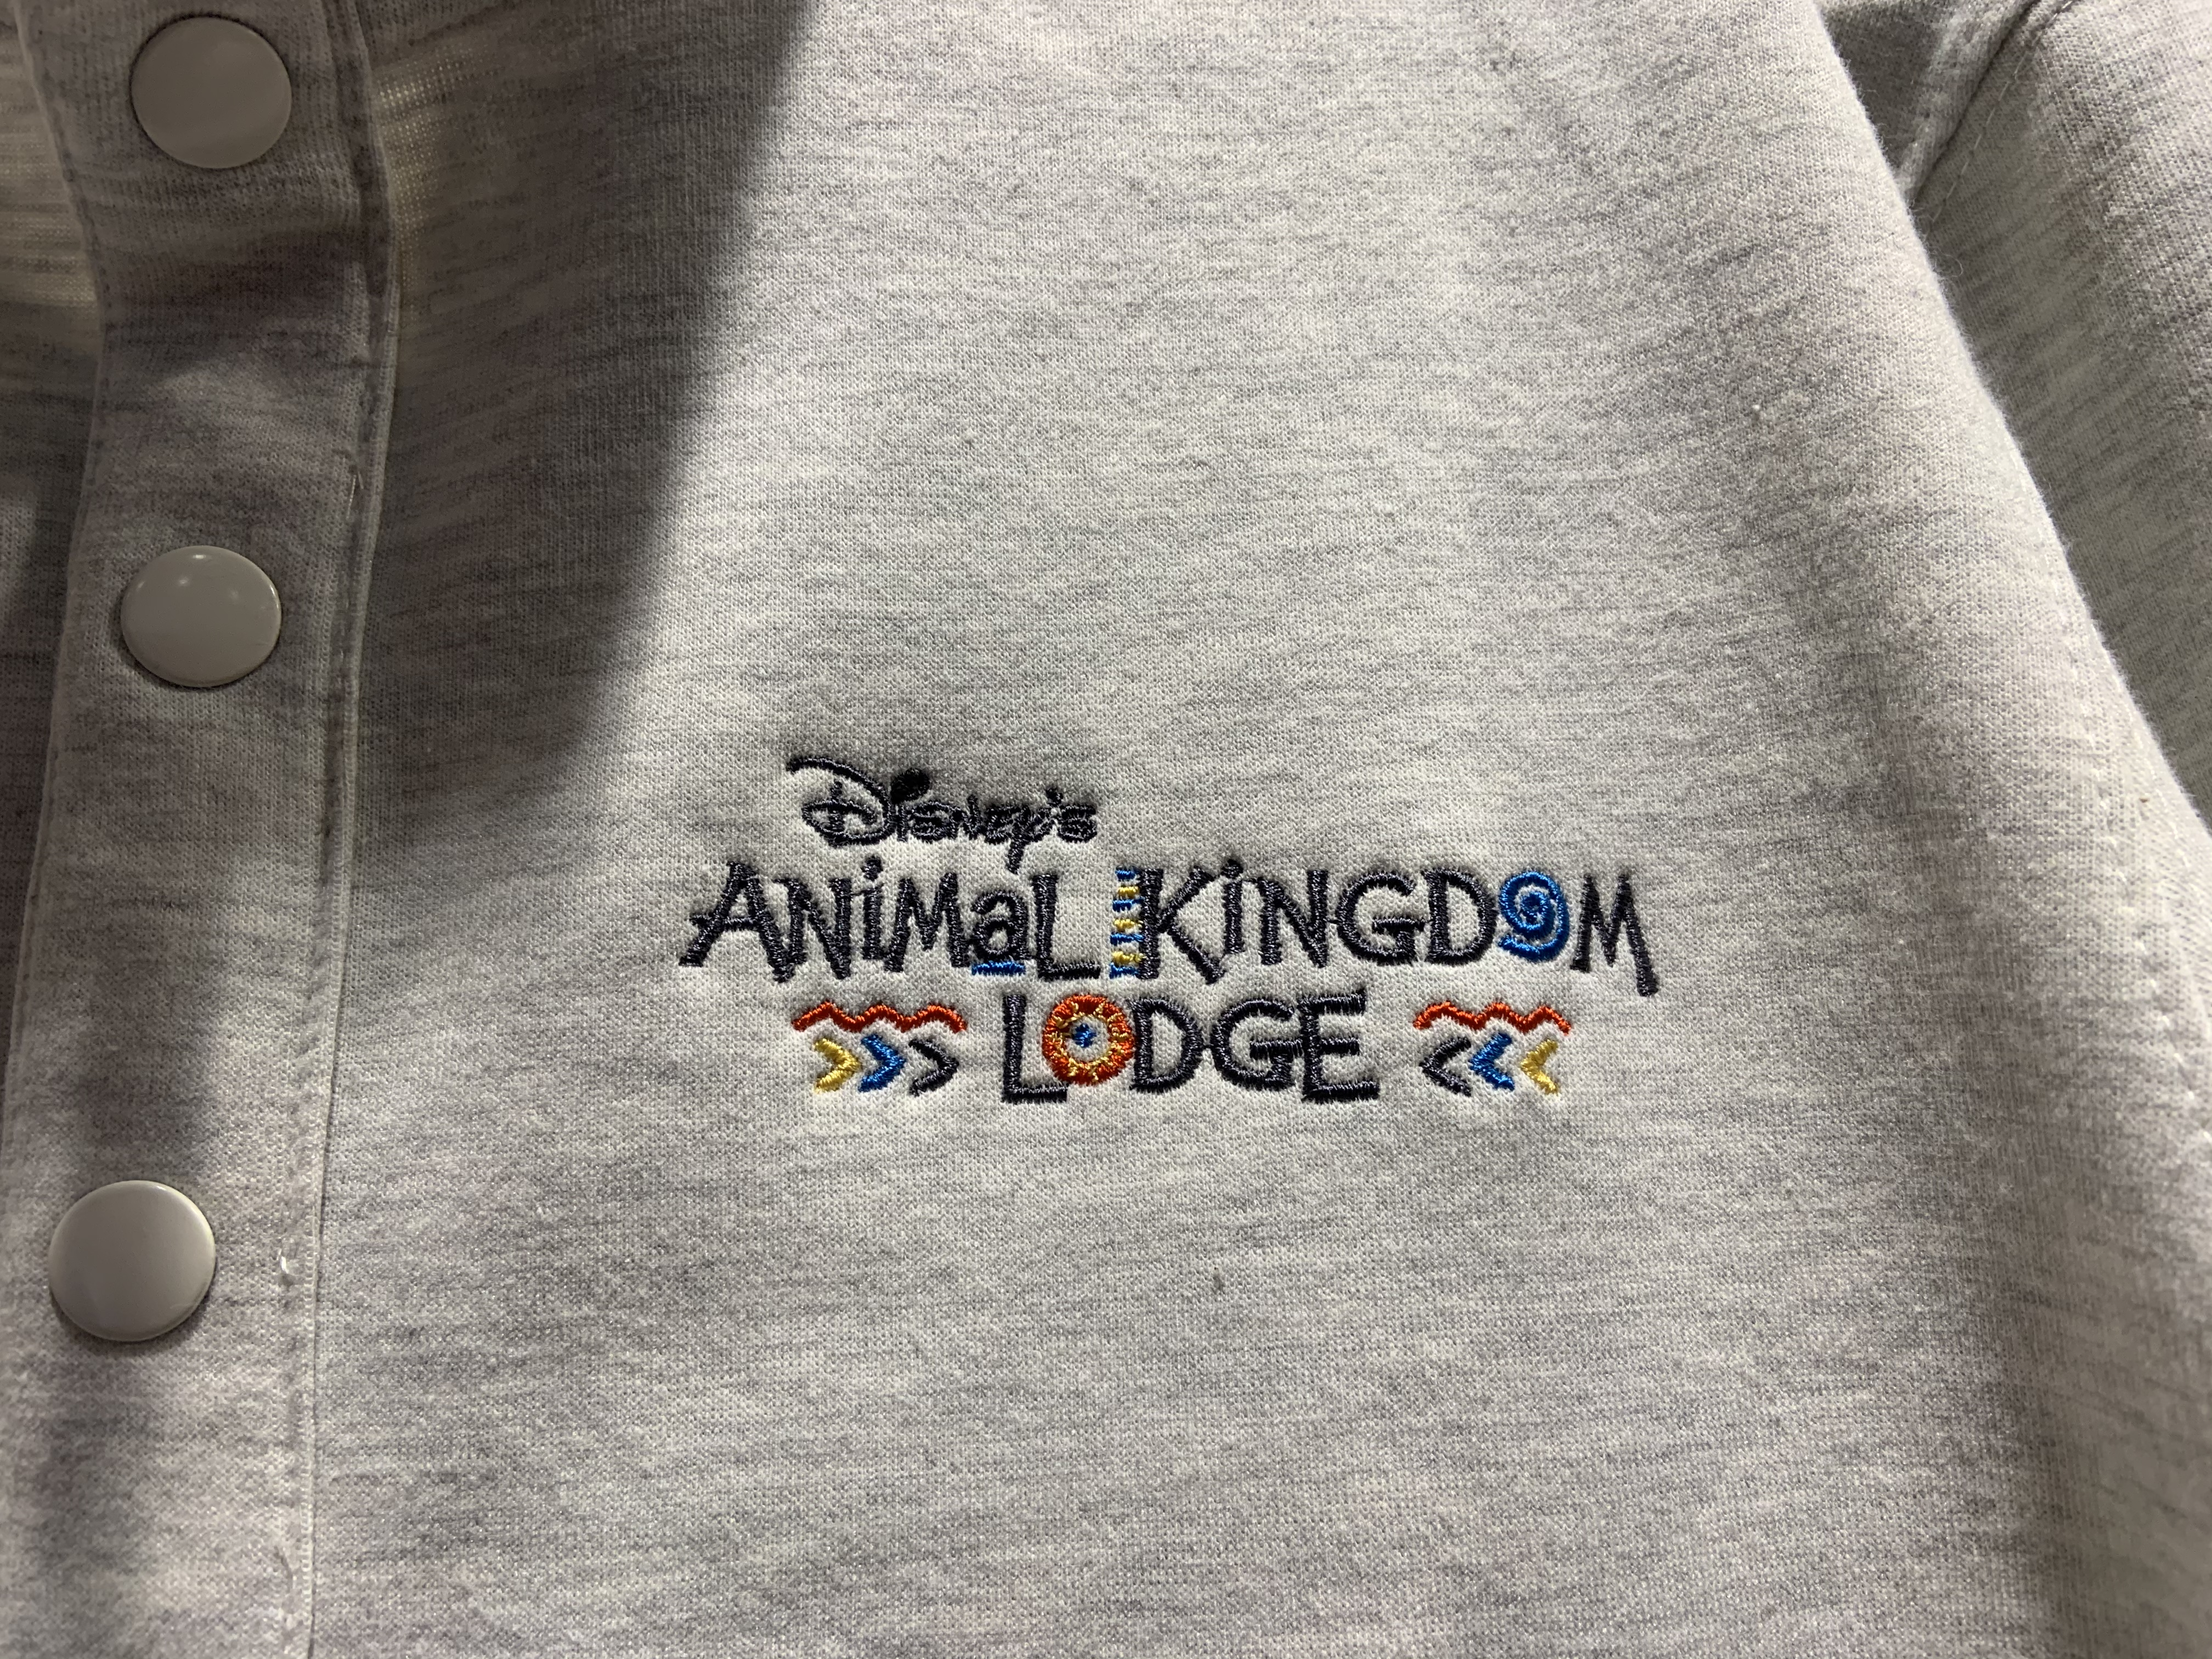 Animal Kingdom Lodge Merchandise 11/25/19 7